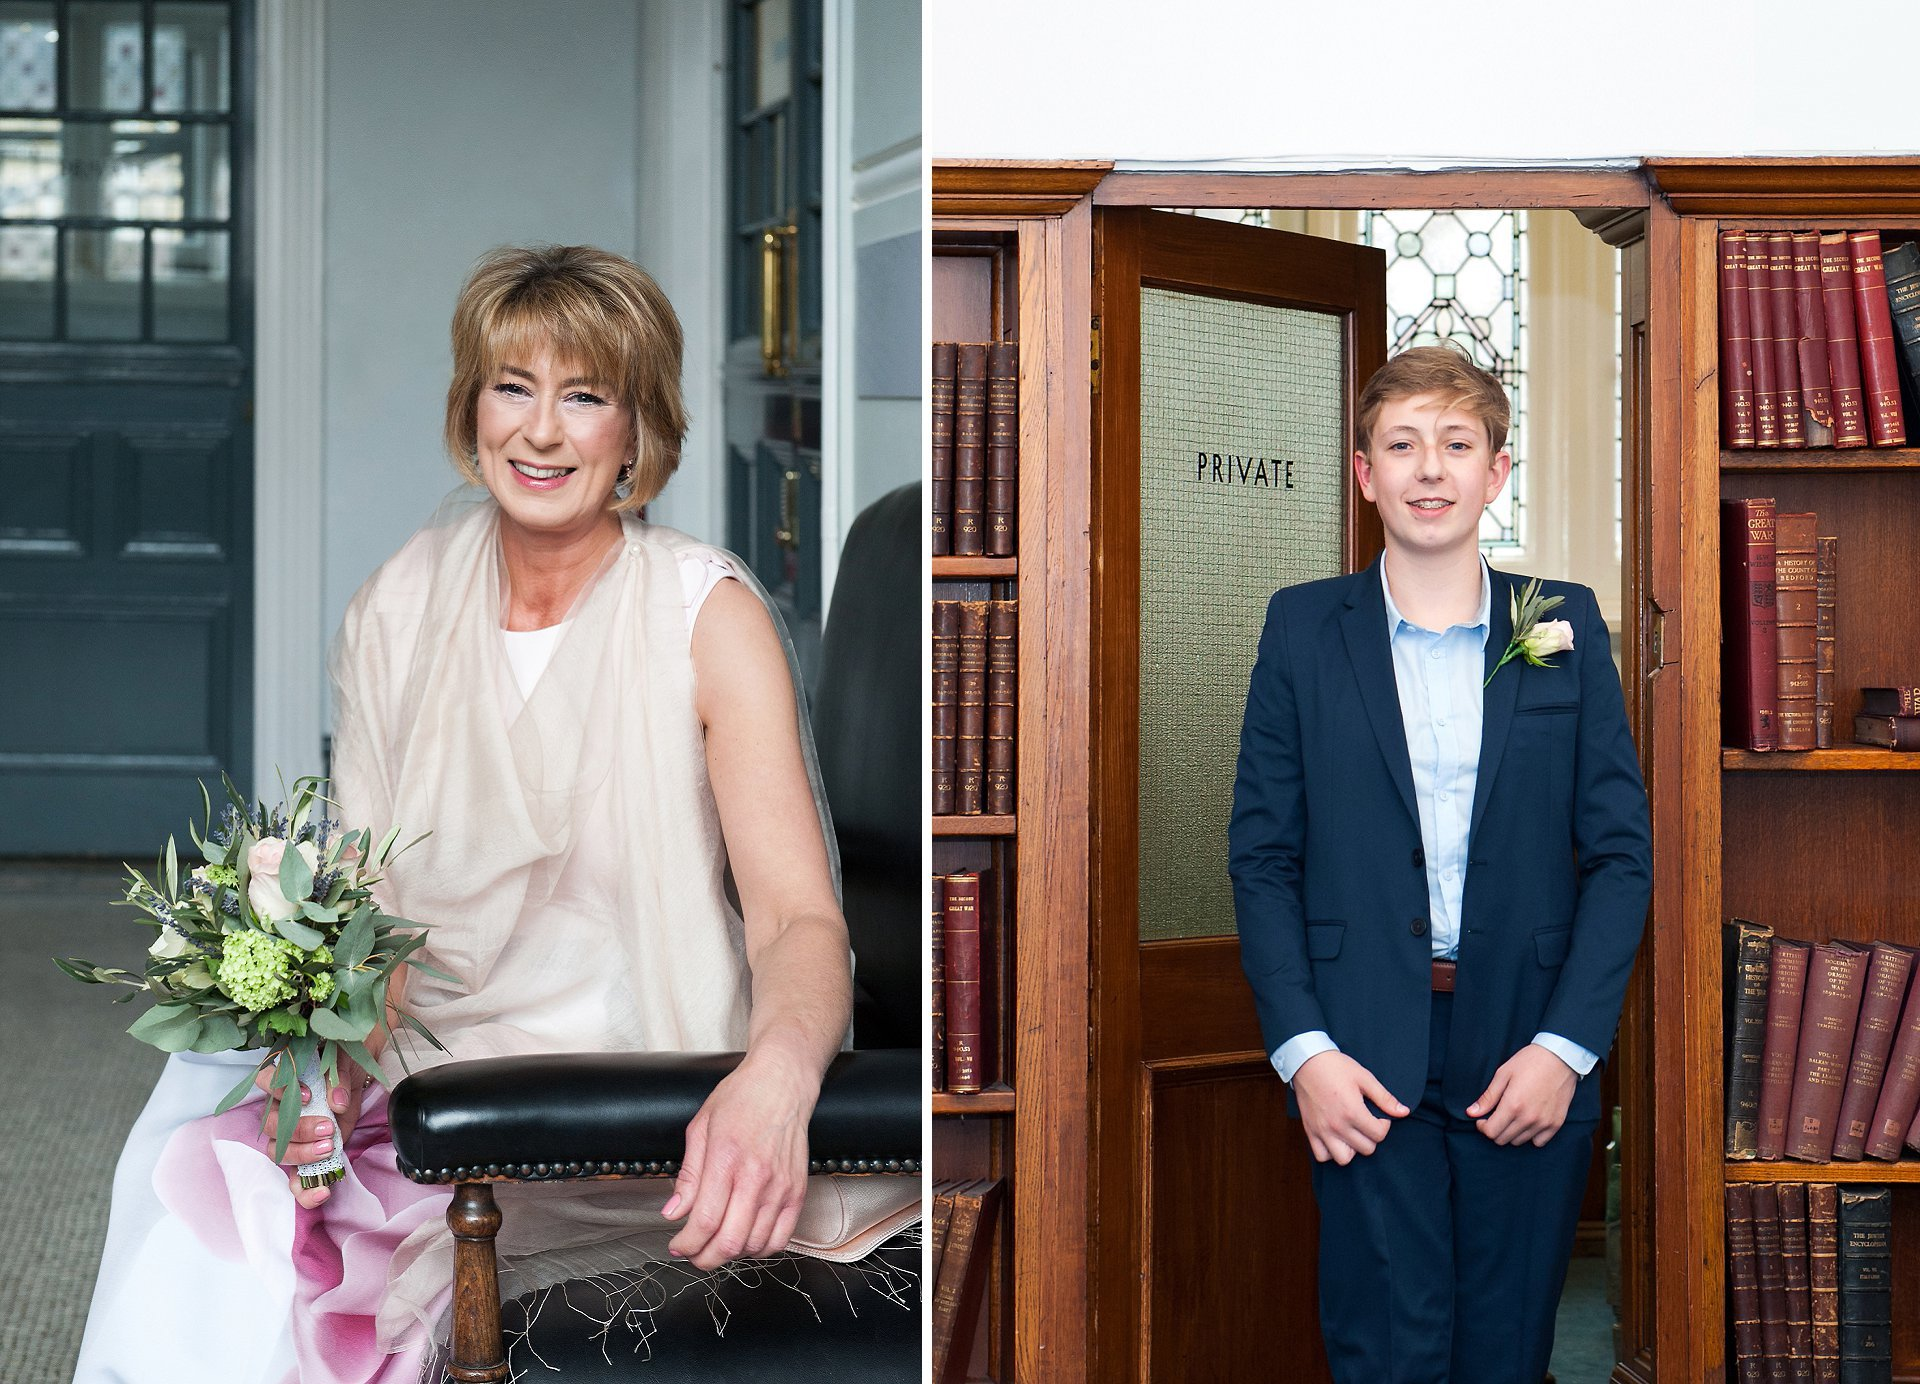 Bride outside the Mayfair Room at Mayfair Library and her son entering the Marylebone Room